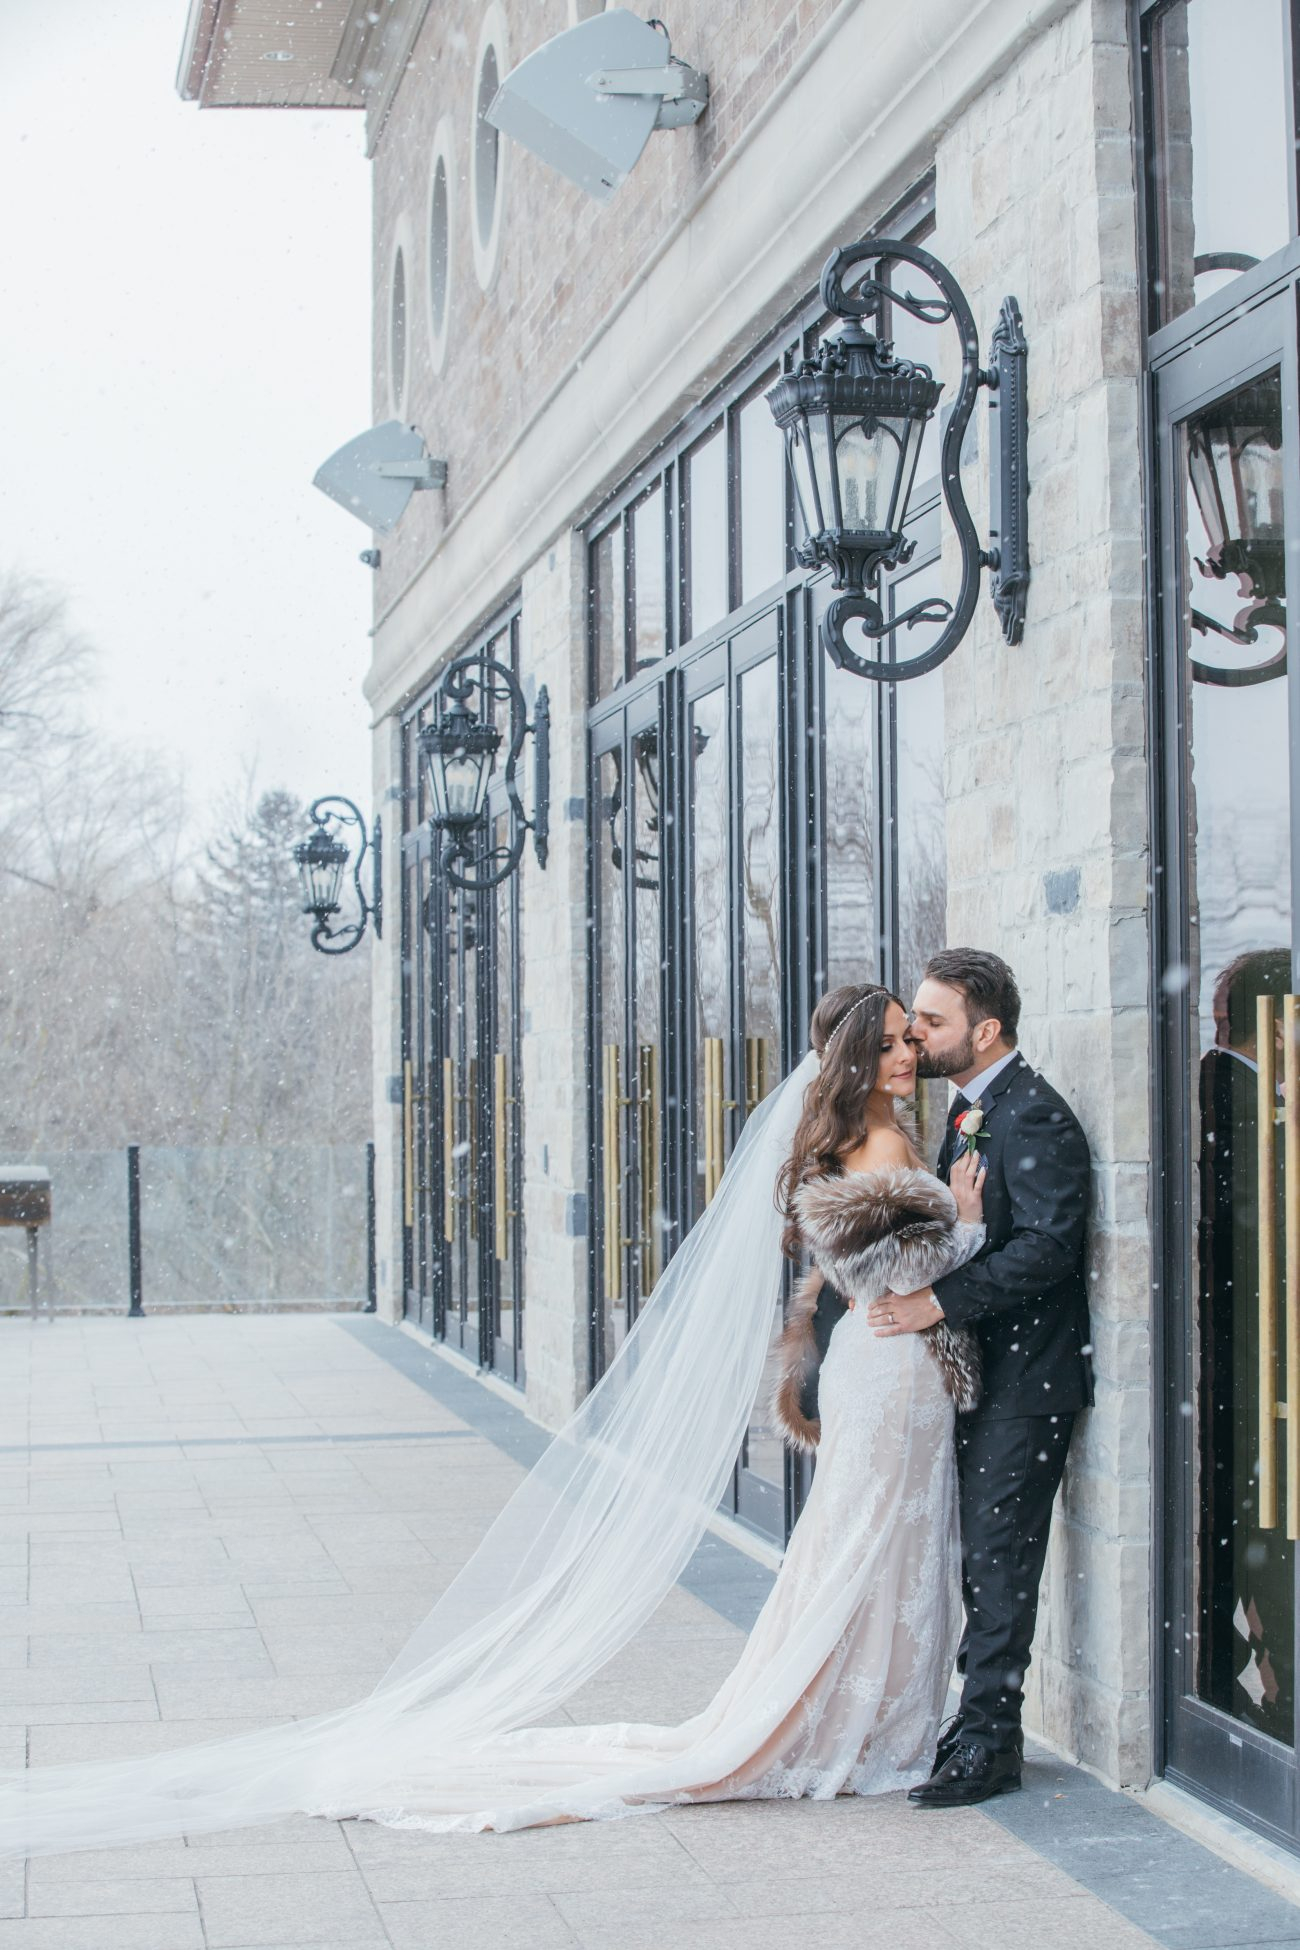 Majestic winter wedding at the Arlington